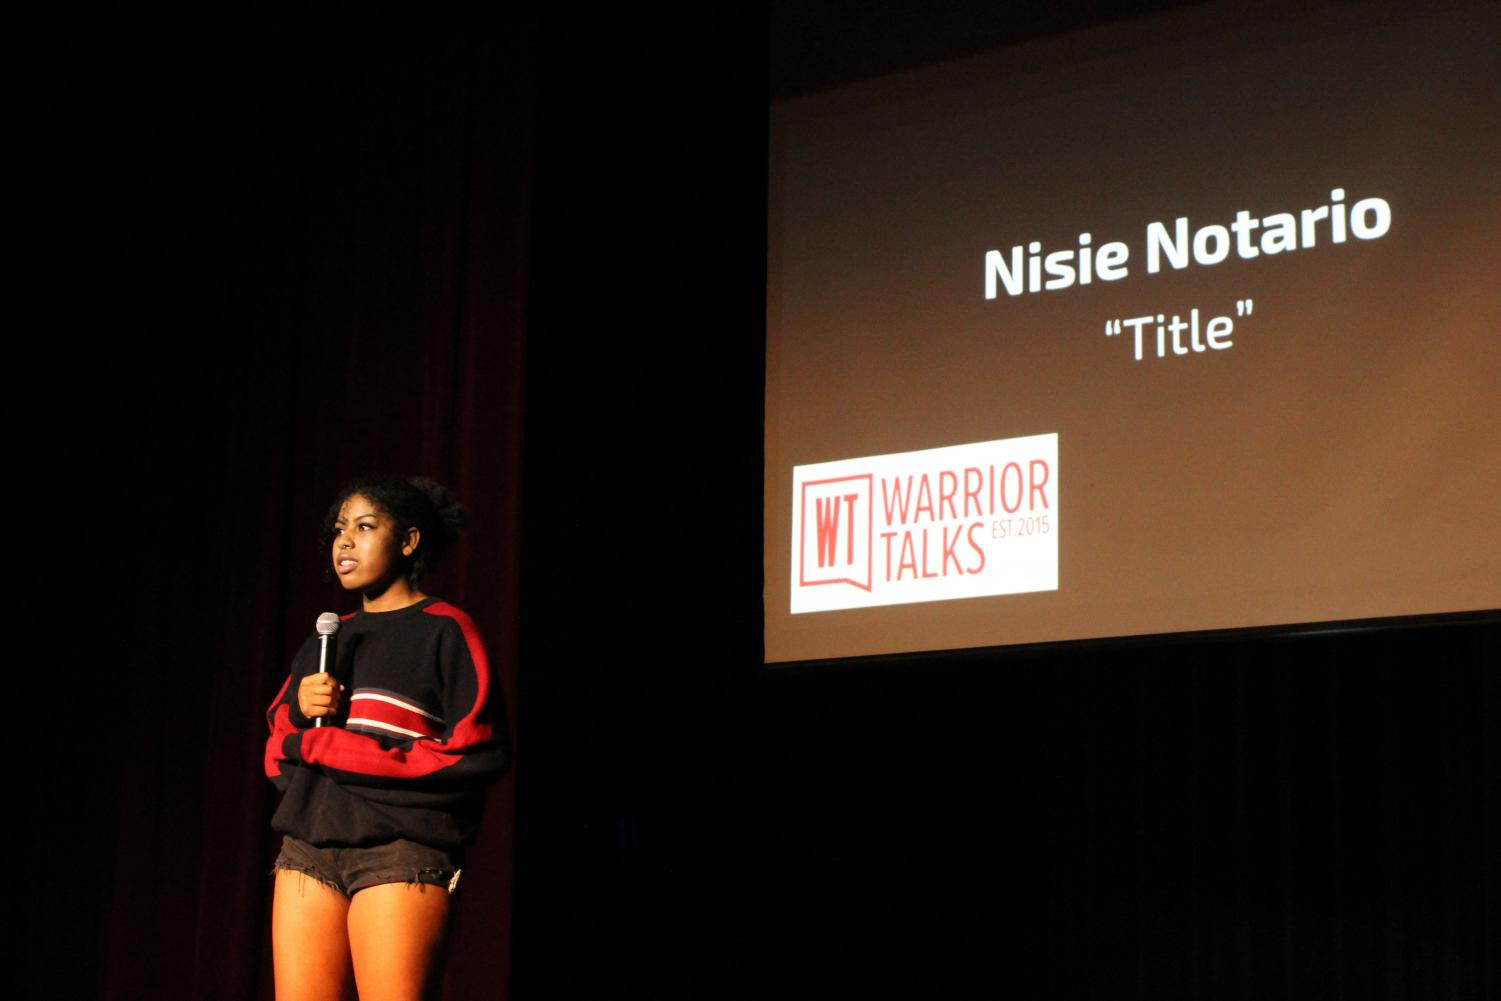 Senior, Nisie Notario speaking about her experiences with bullying.